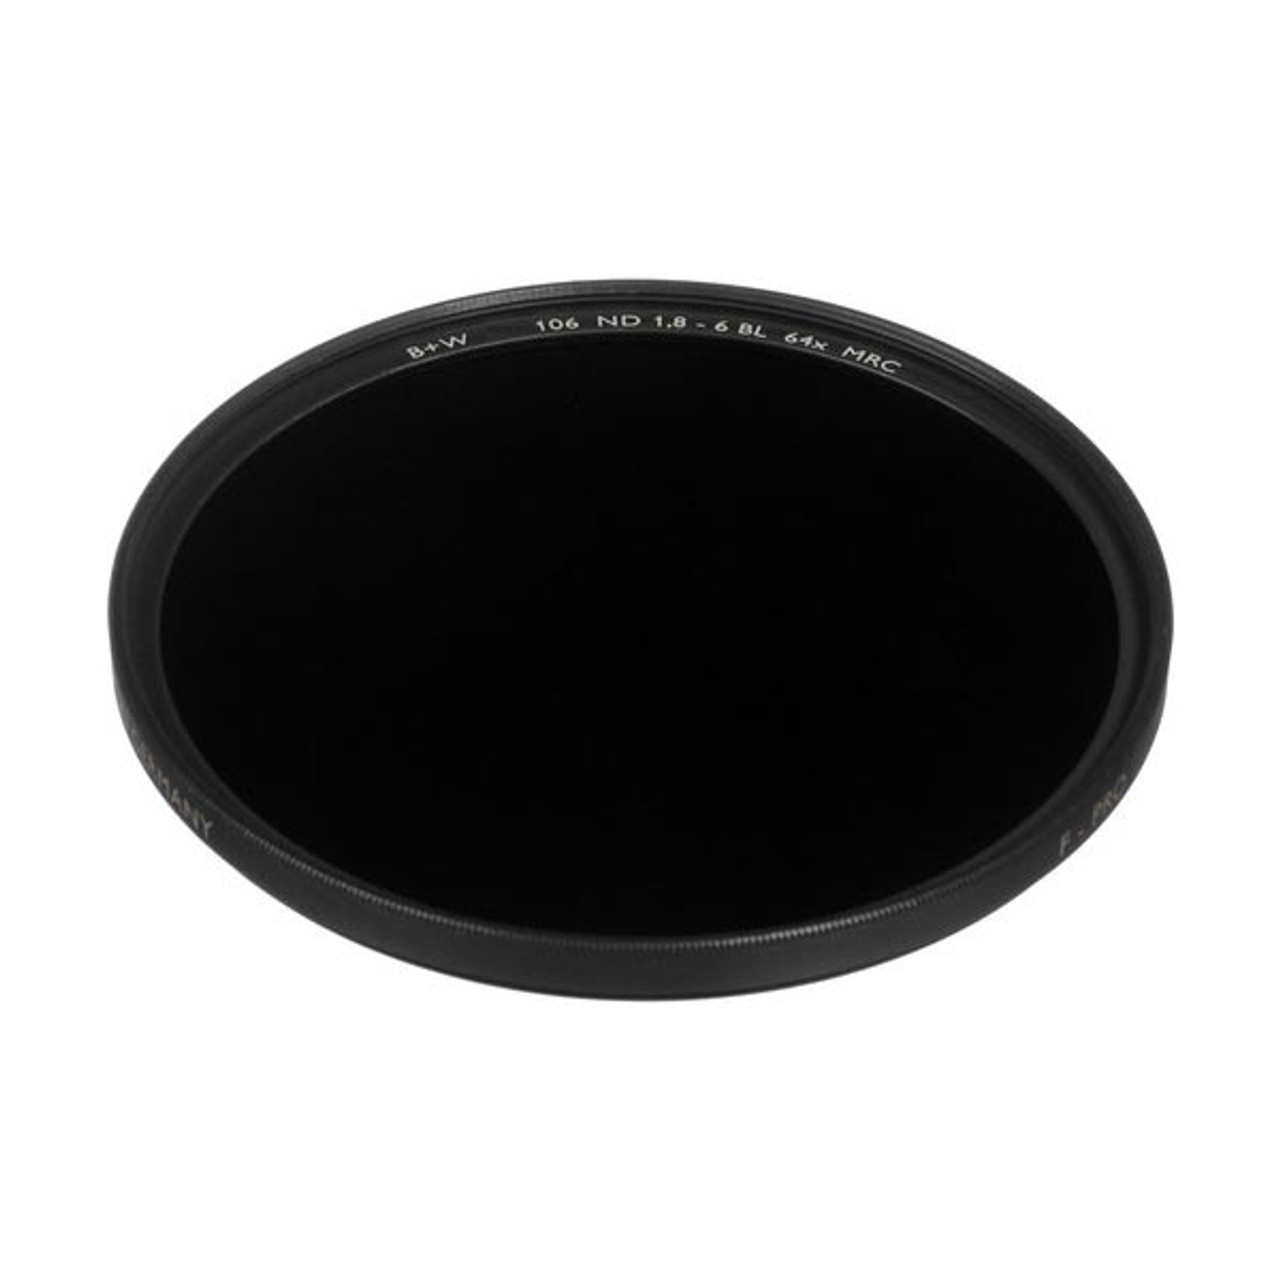 B+W 62mm ND 1.8 - 64x (106) Filter 10-Stop